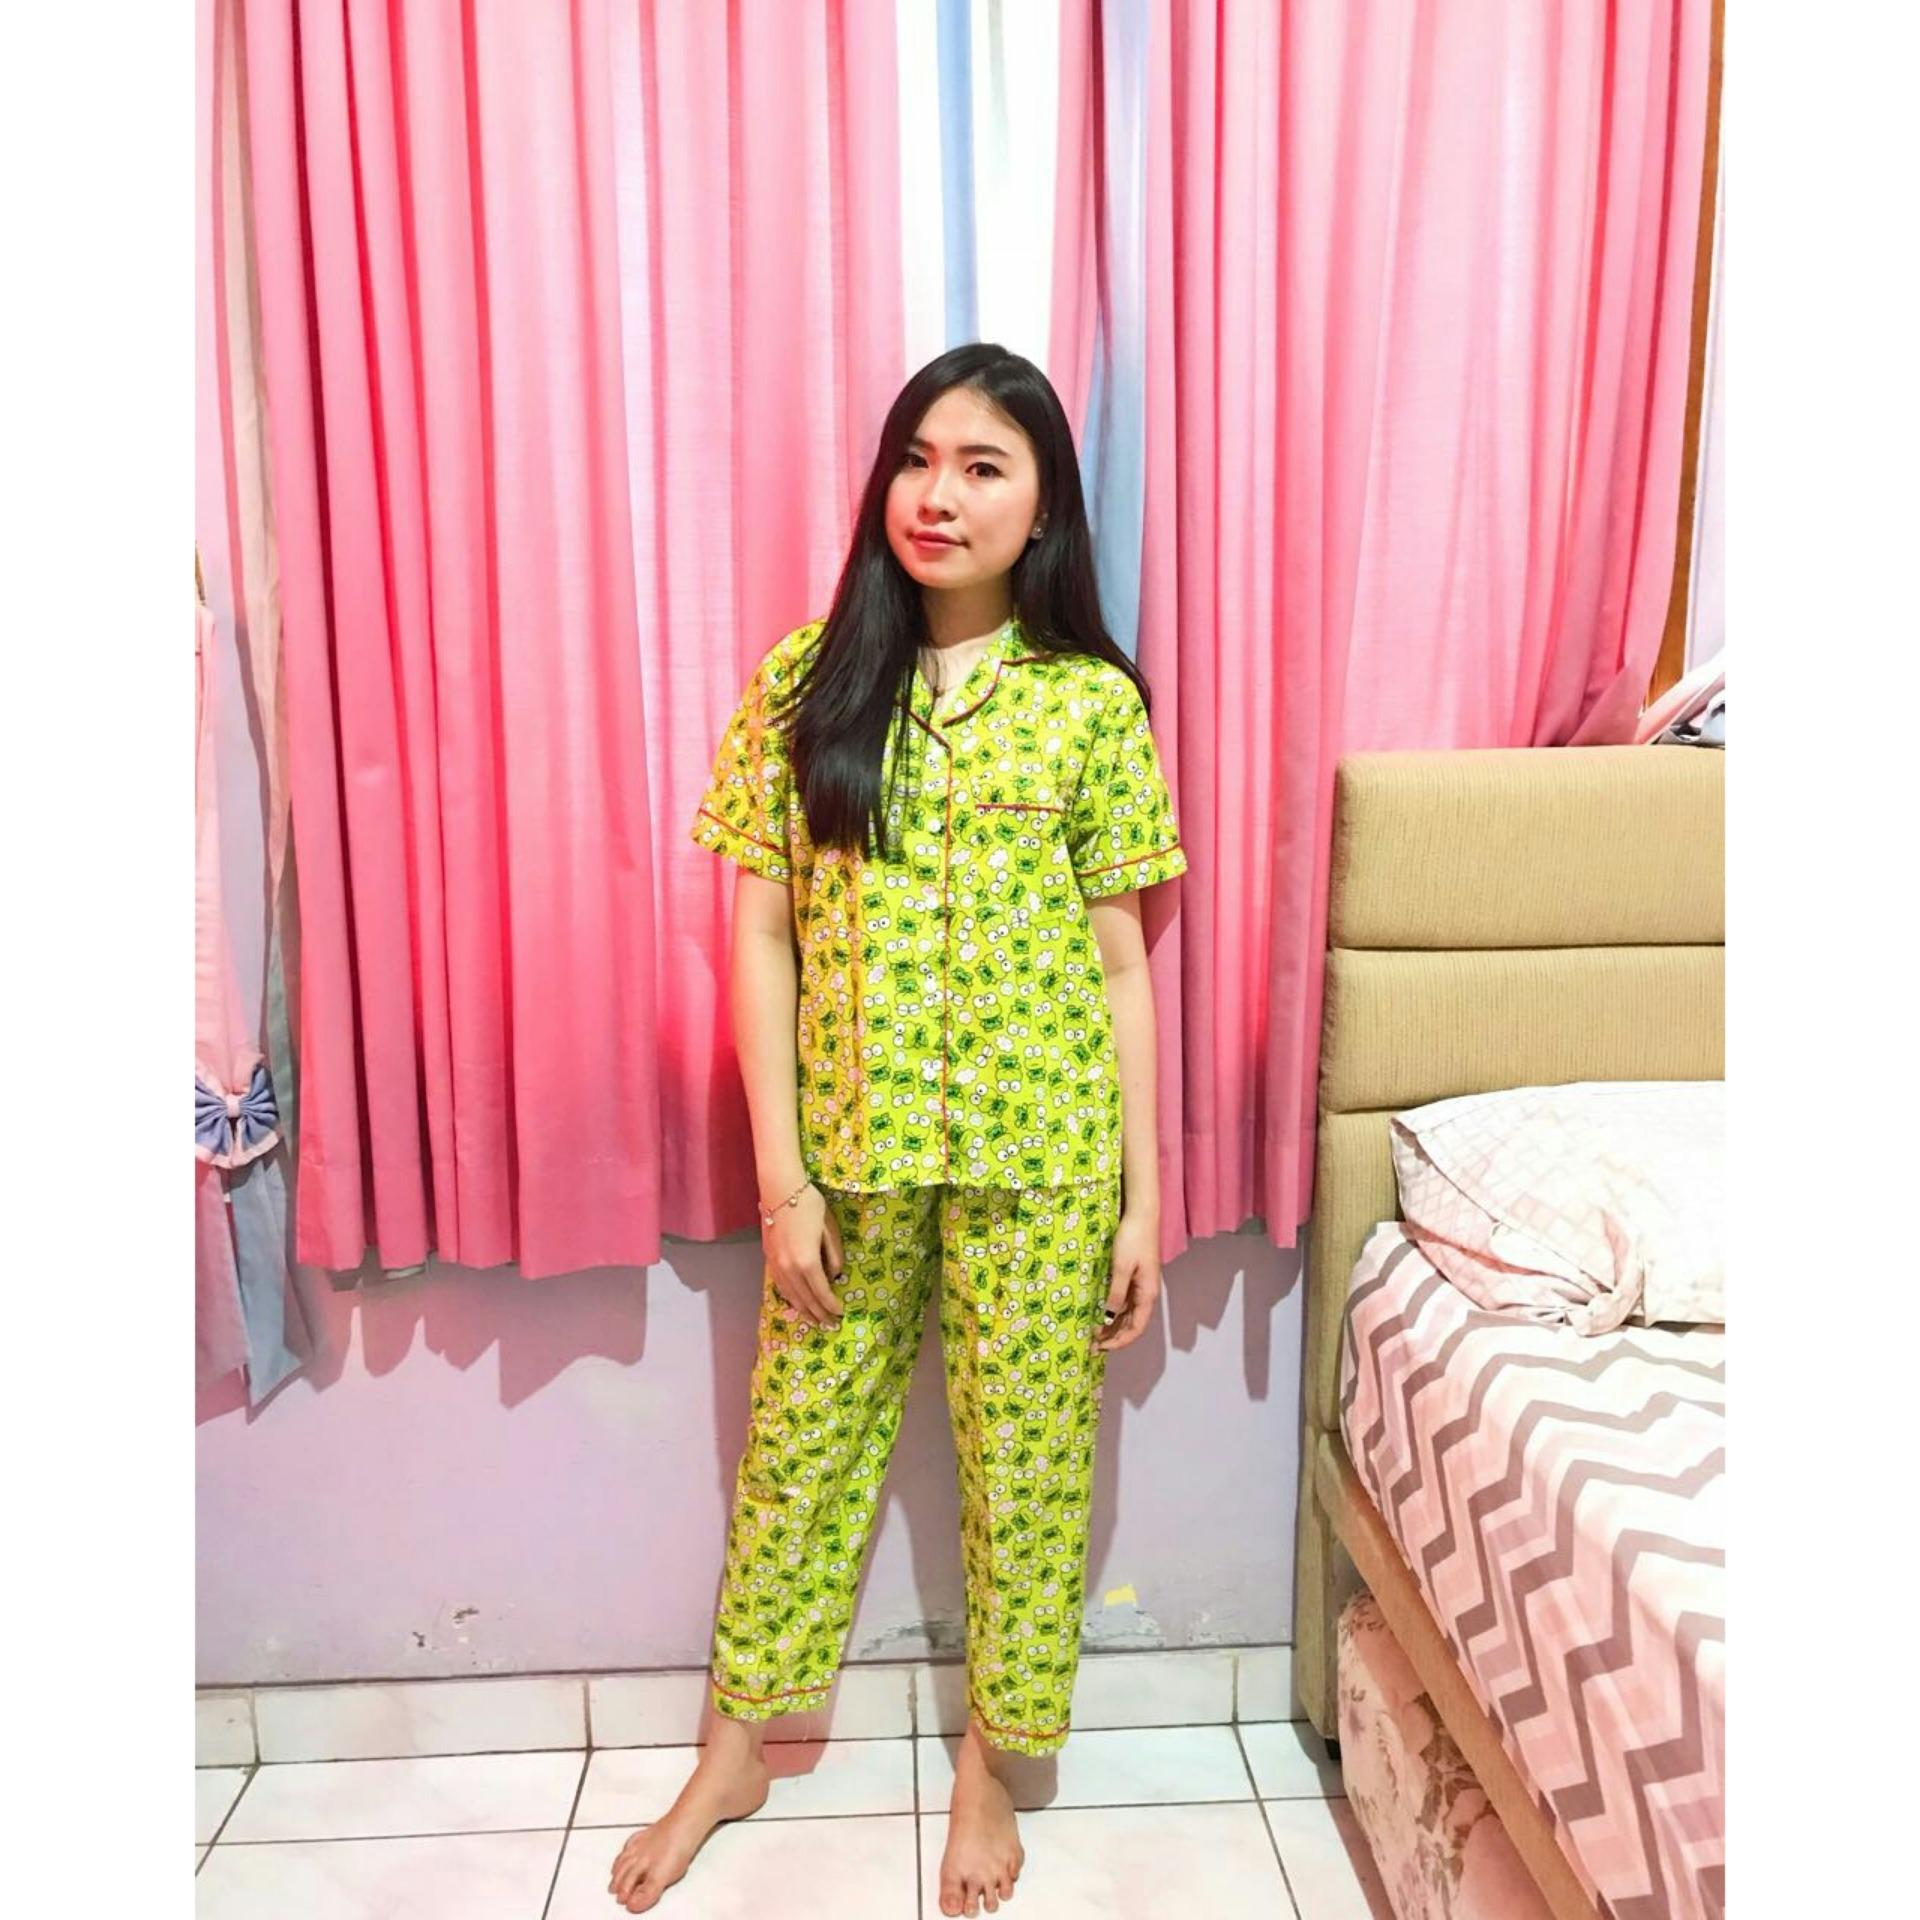 Perbandingan Harga Media Fashion Shop Baju Tidur Wanita Piyama Longpants Motif Little Keropi Lembut Dingin Bagus Laris Murah Bahan Katun Import All Size Ld 104 106 Best Seller Di Indonesia